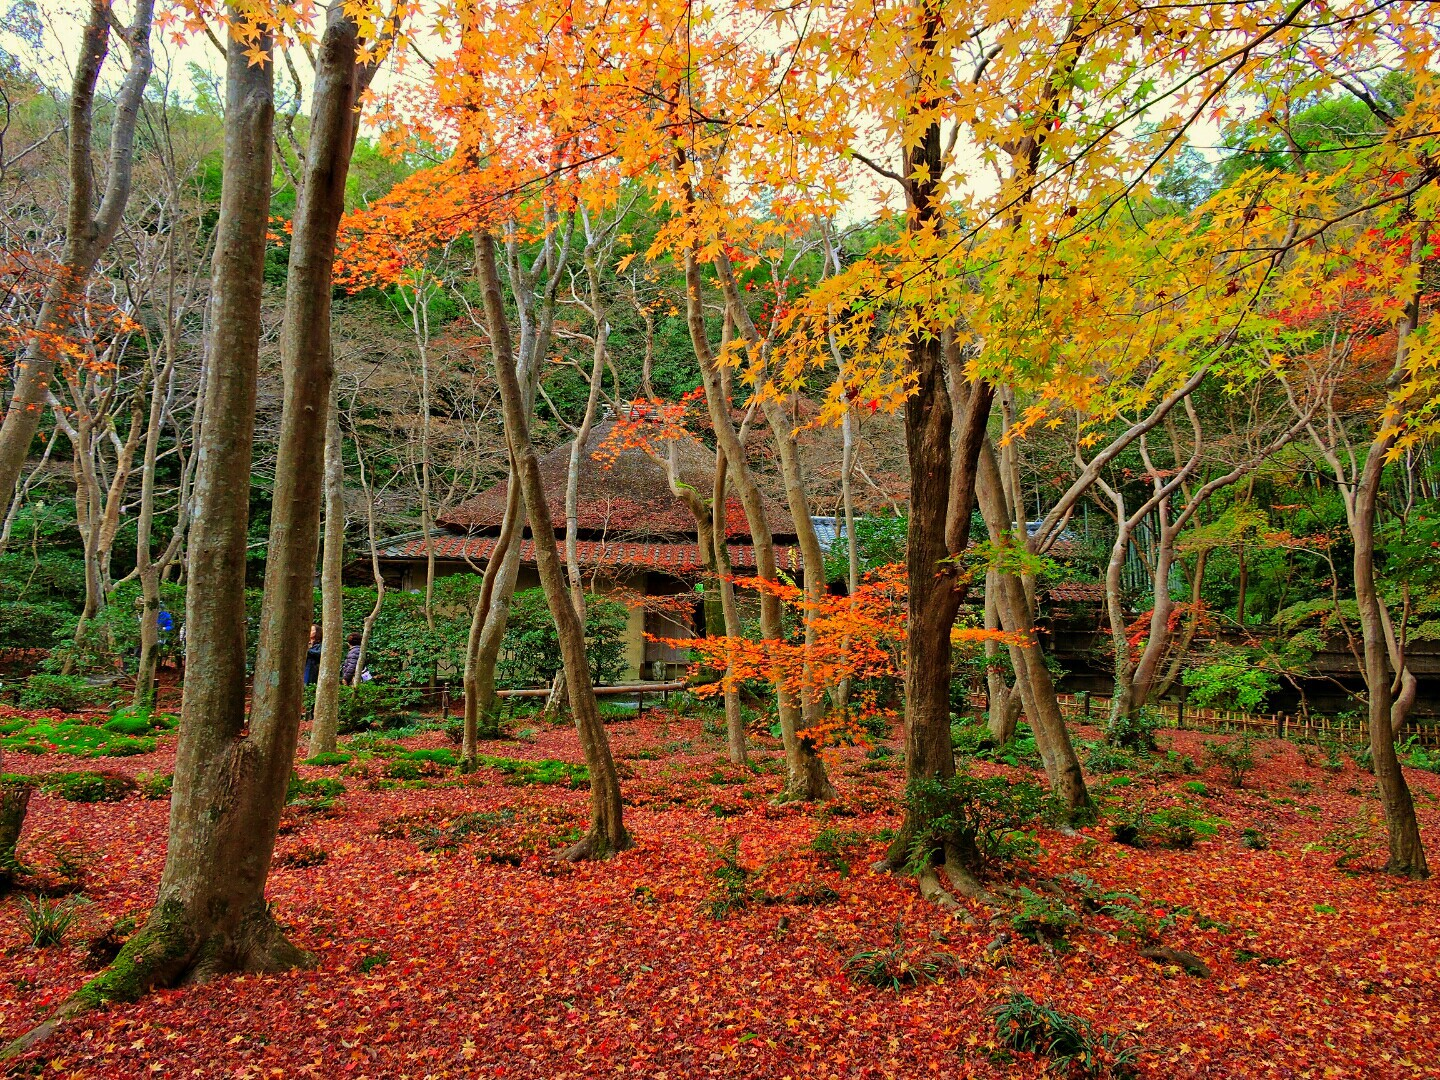 10 Best Autumn Leaves Spots in Kyoto 2019